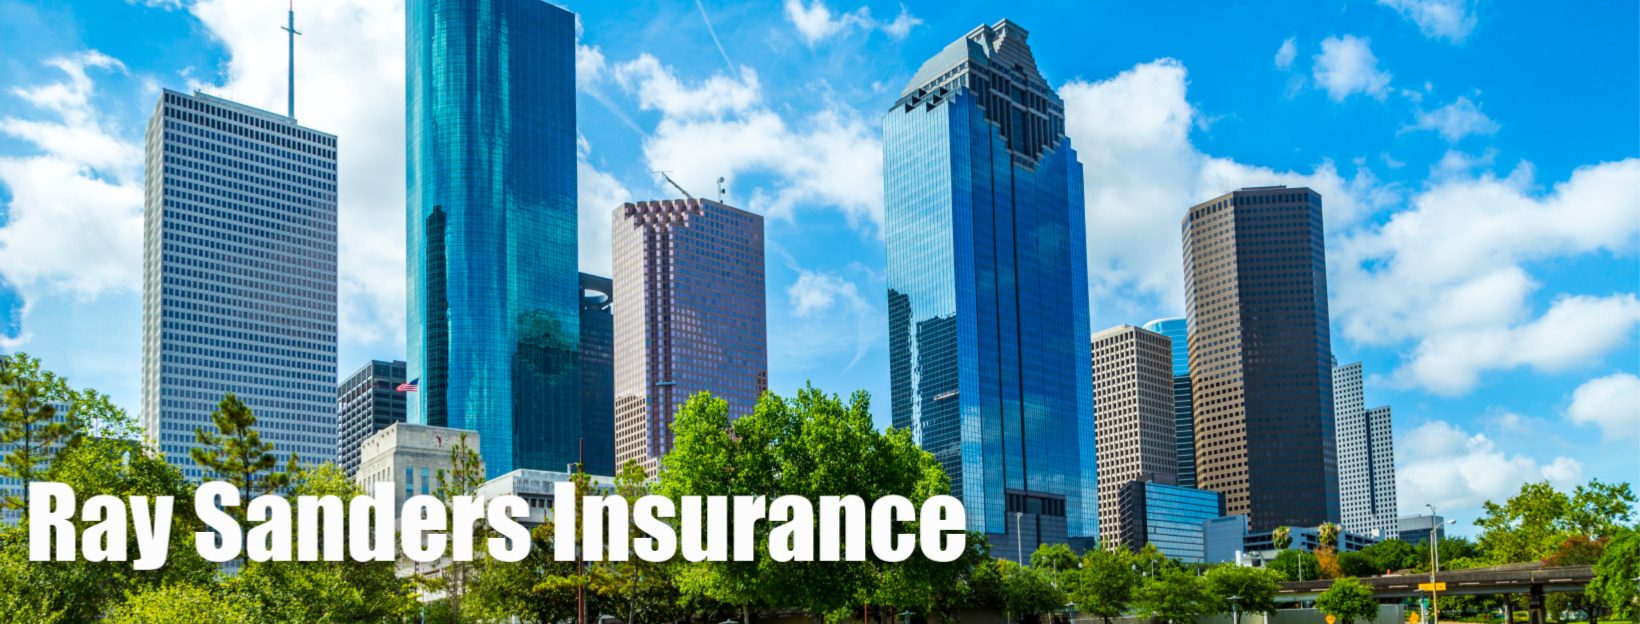 Houston Digital Marketing with Call to action Images and Video